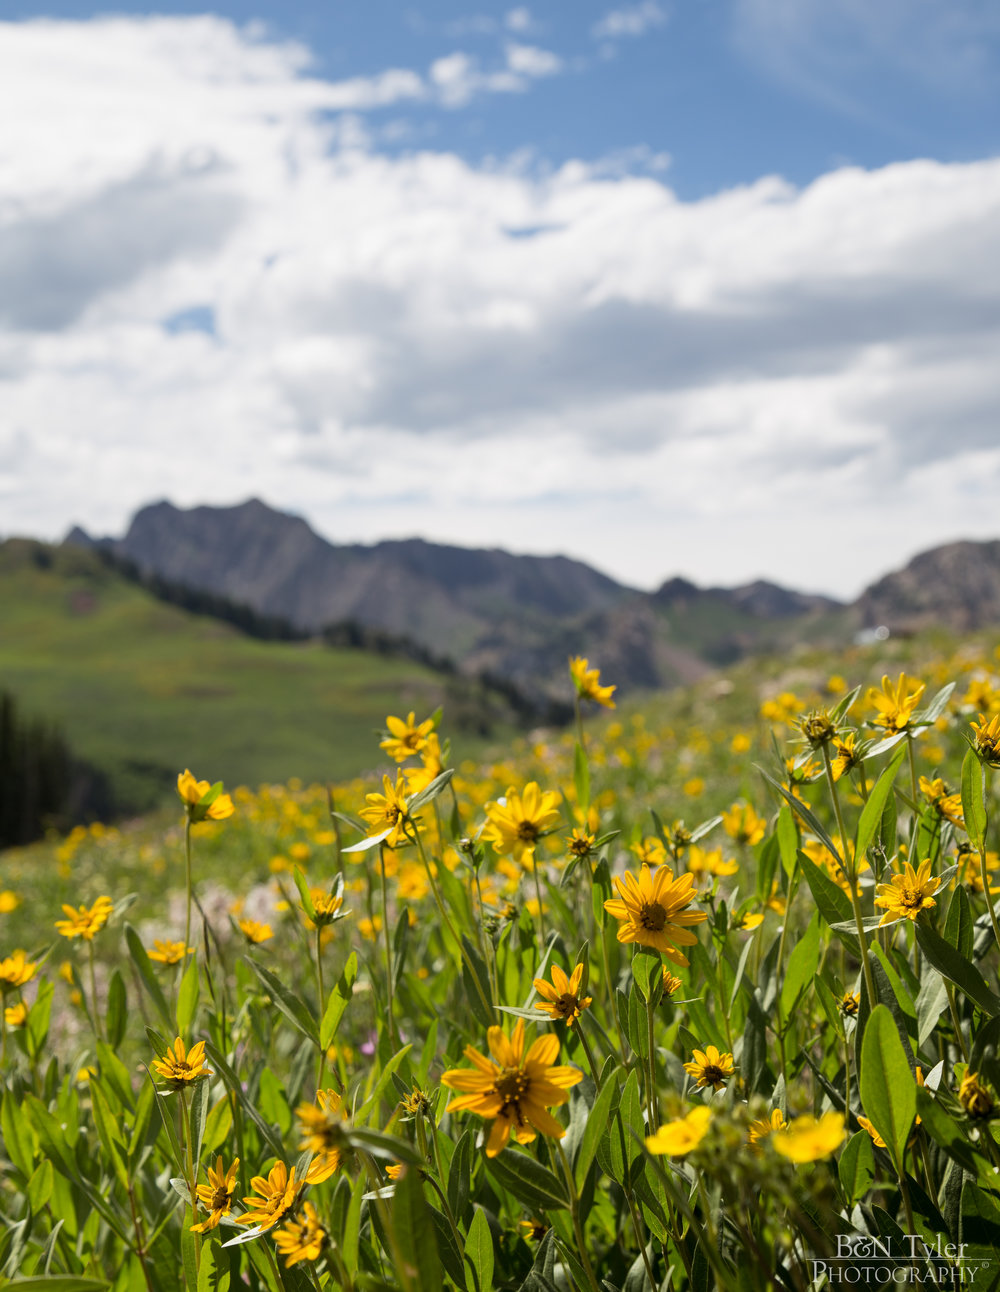 Sunflowers in the Alta mountains